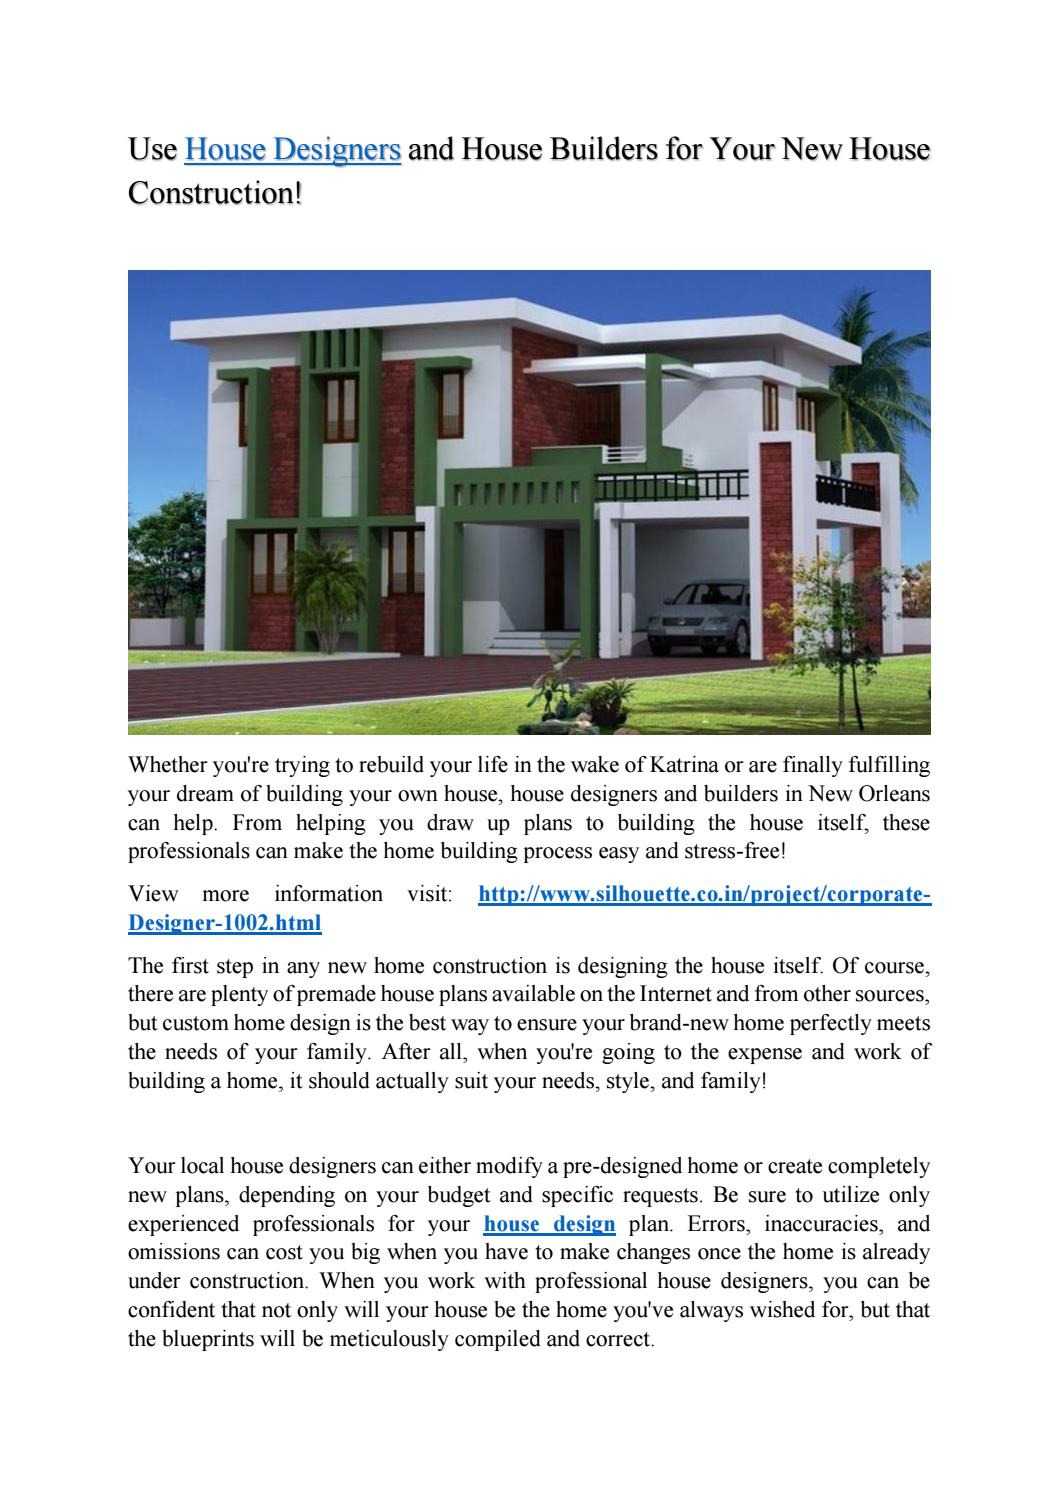 Brand New House Plans Inspirational Use House Designers and House Builders for Your New House